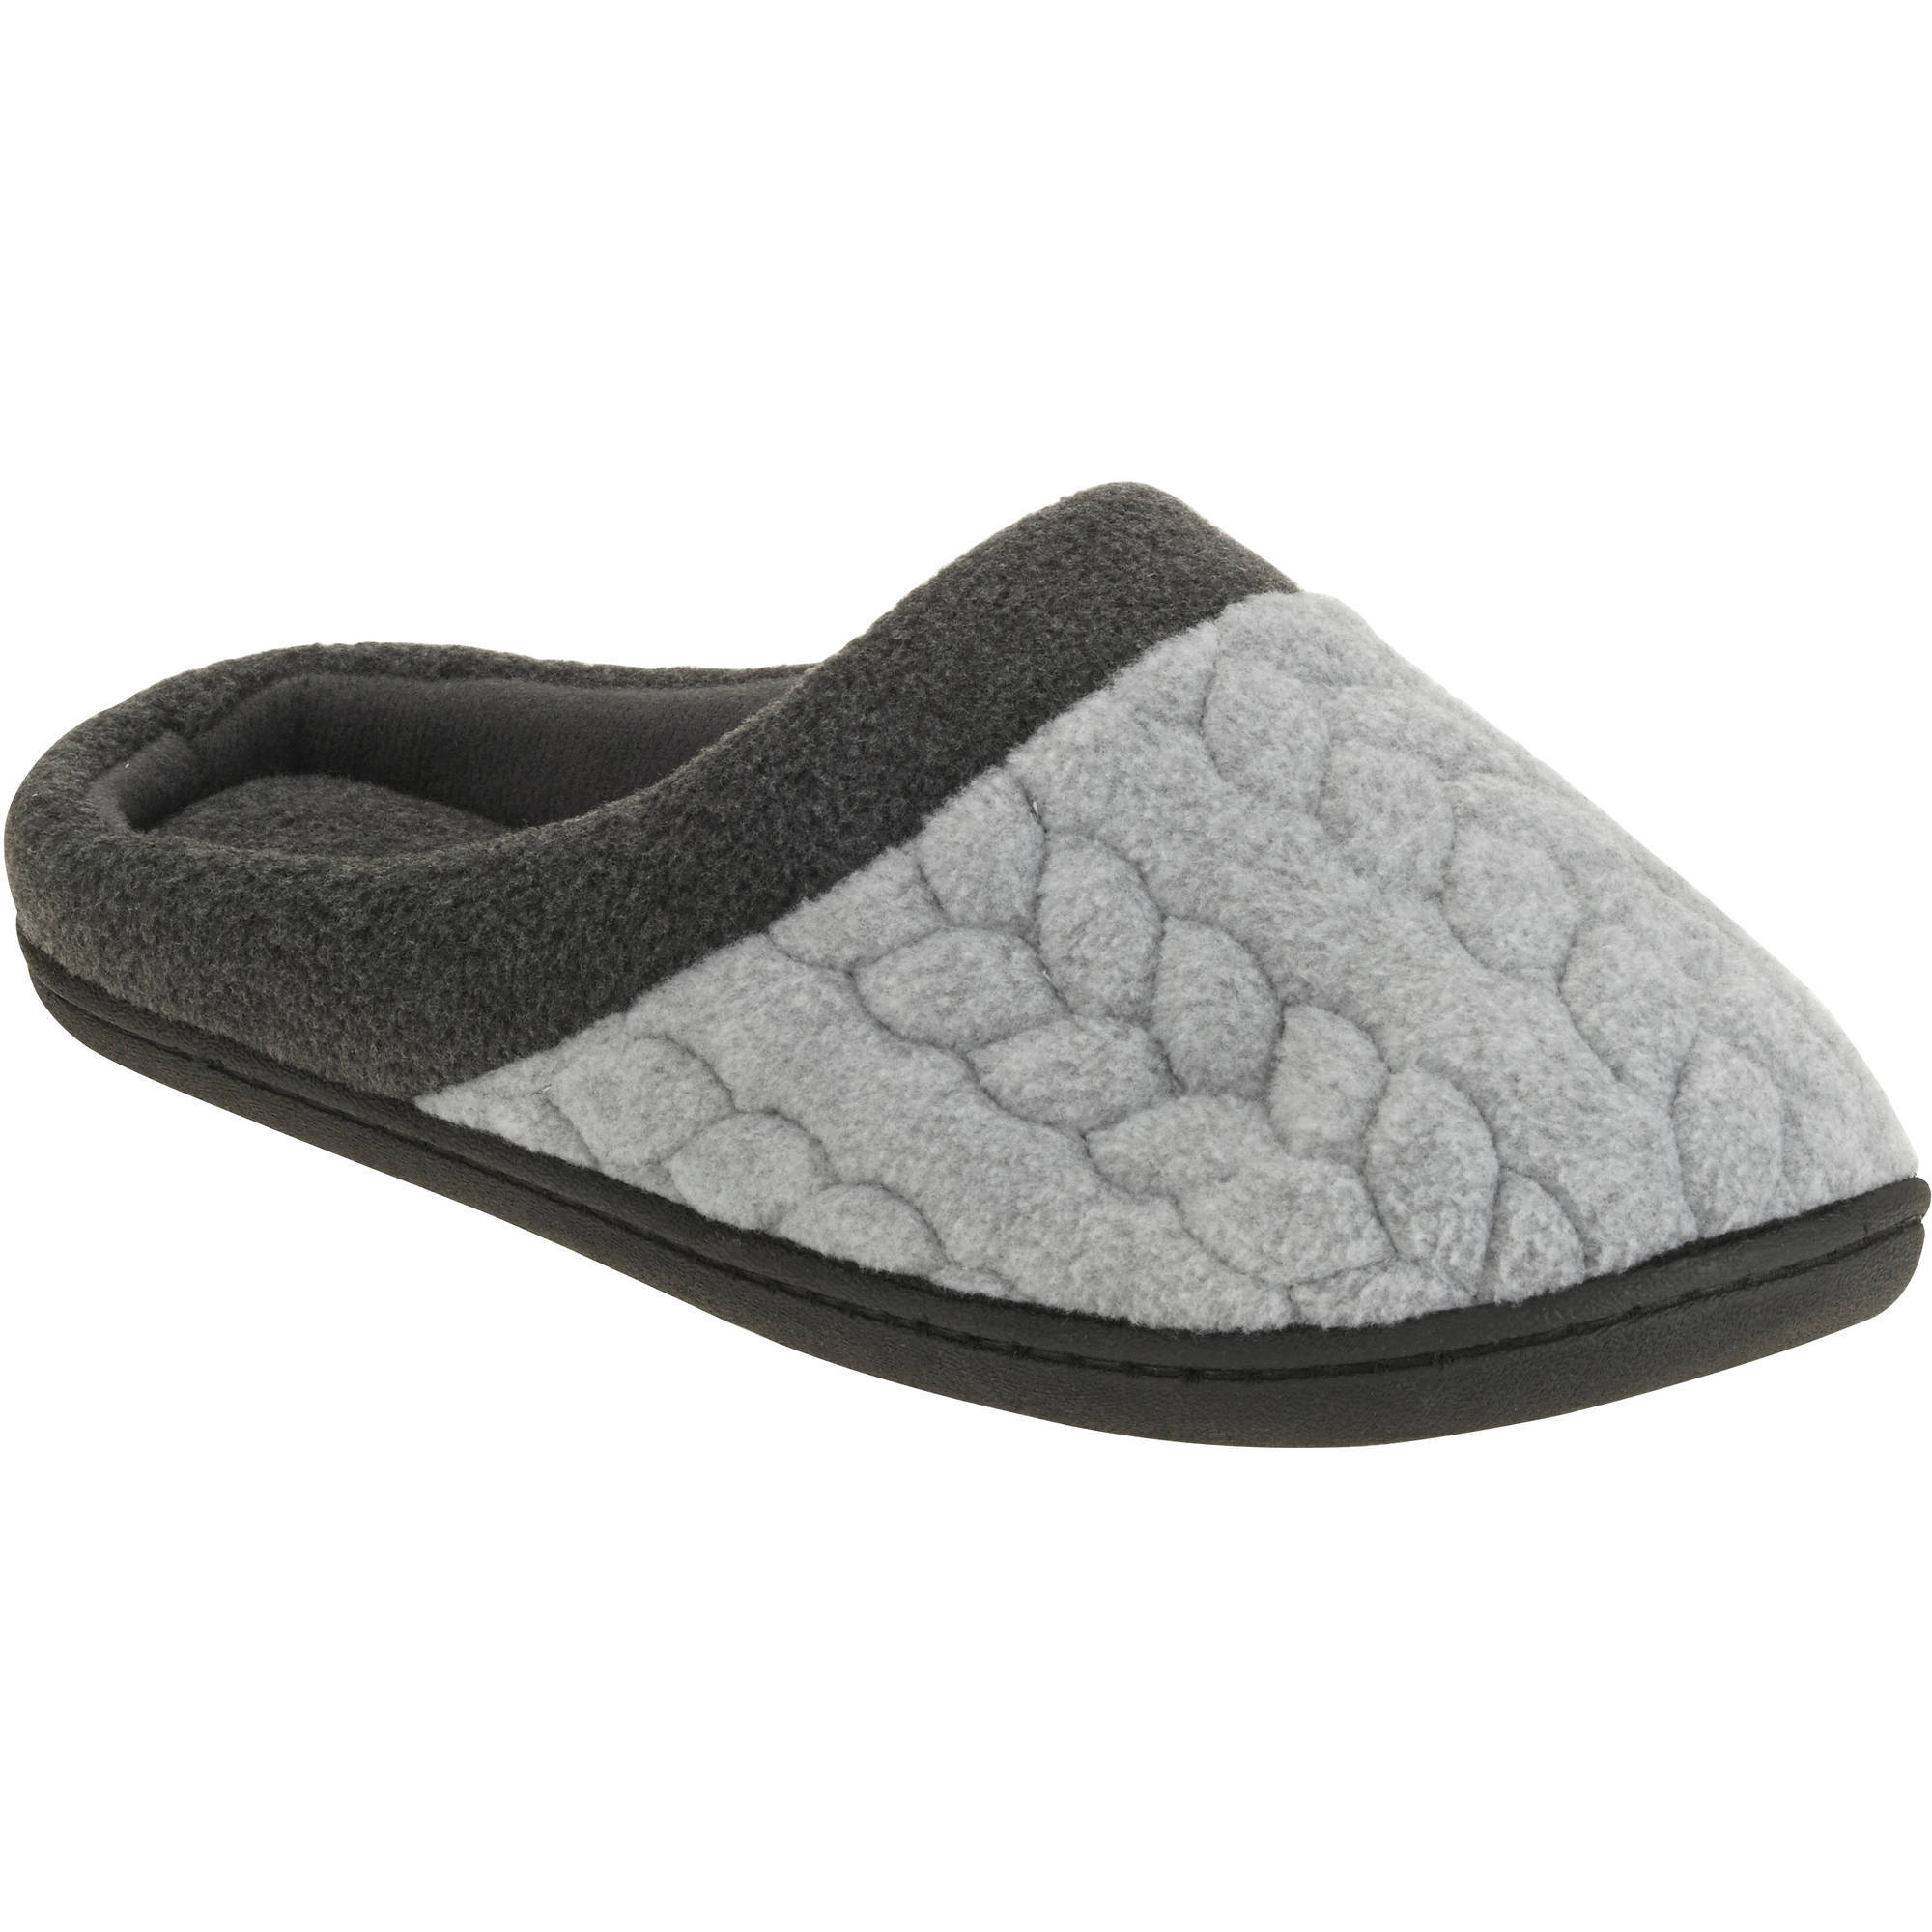 DF by Dearfoam's Women's Quilted Fleece Clog Slipper